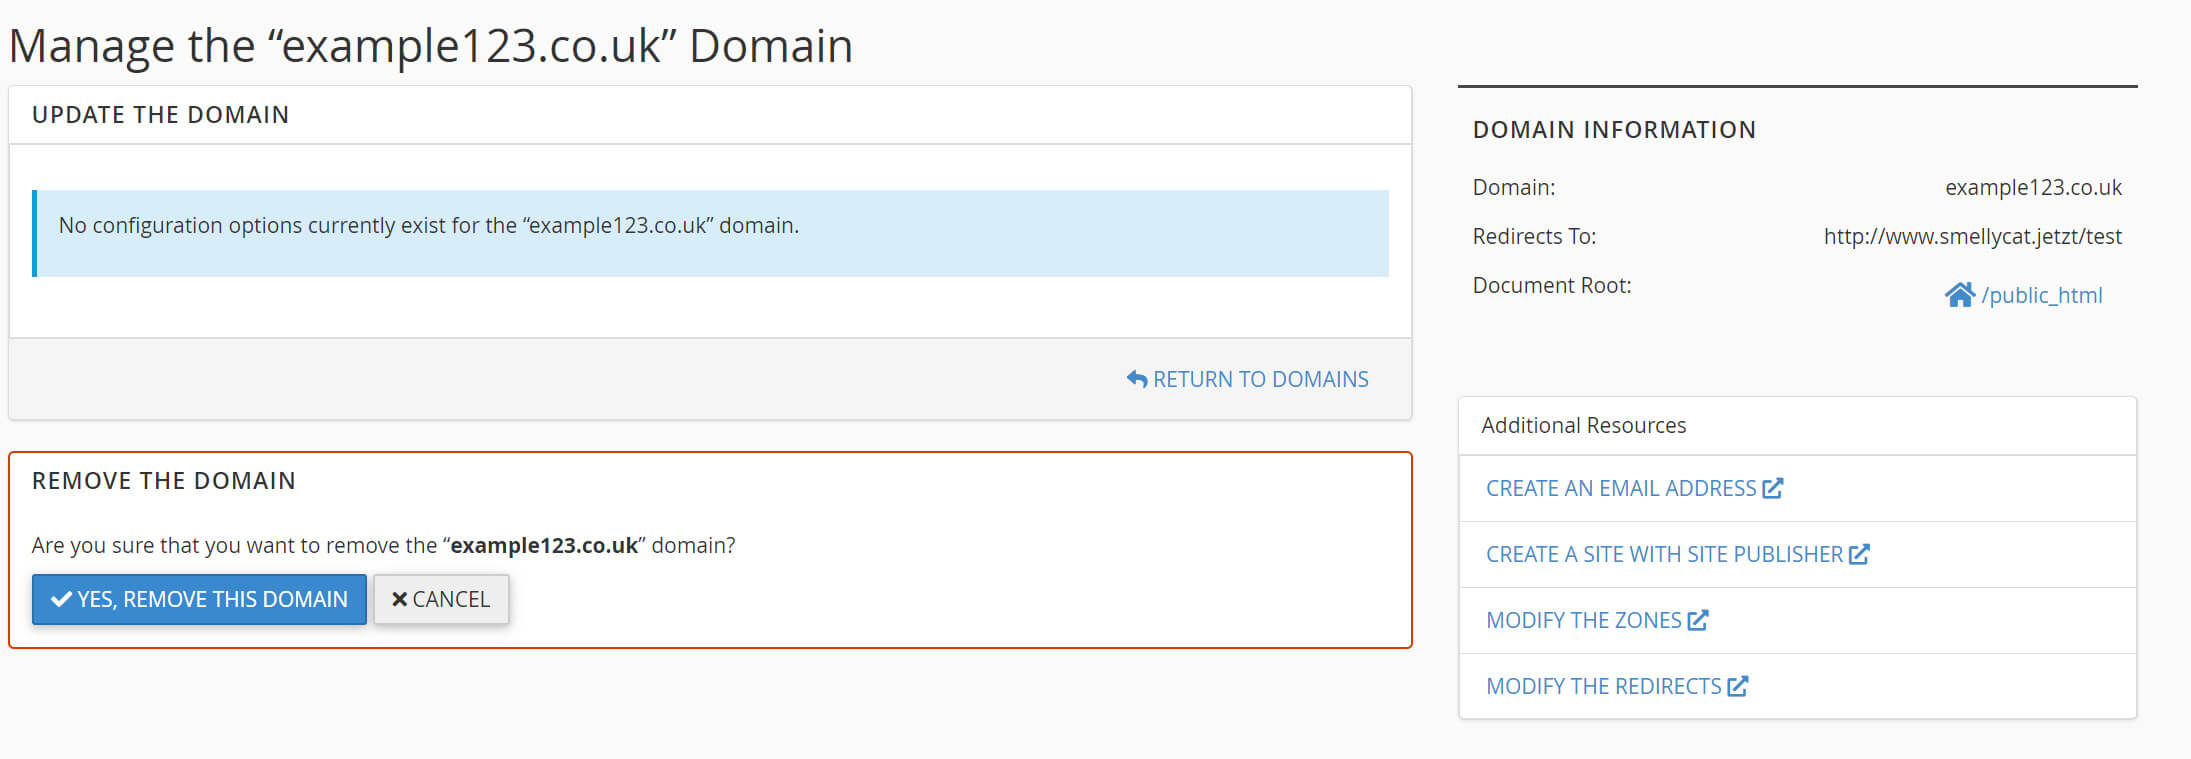 Domain Information